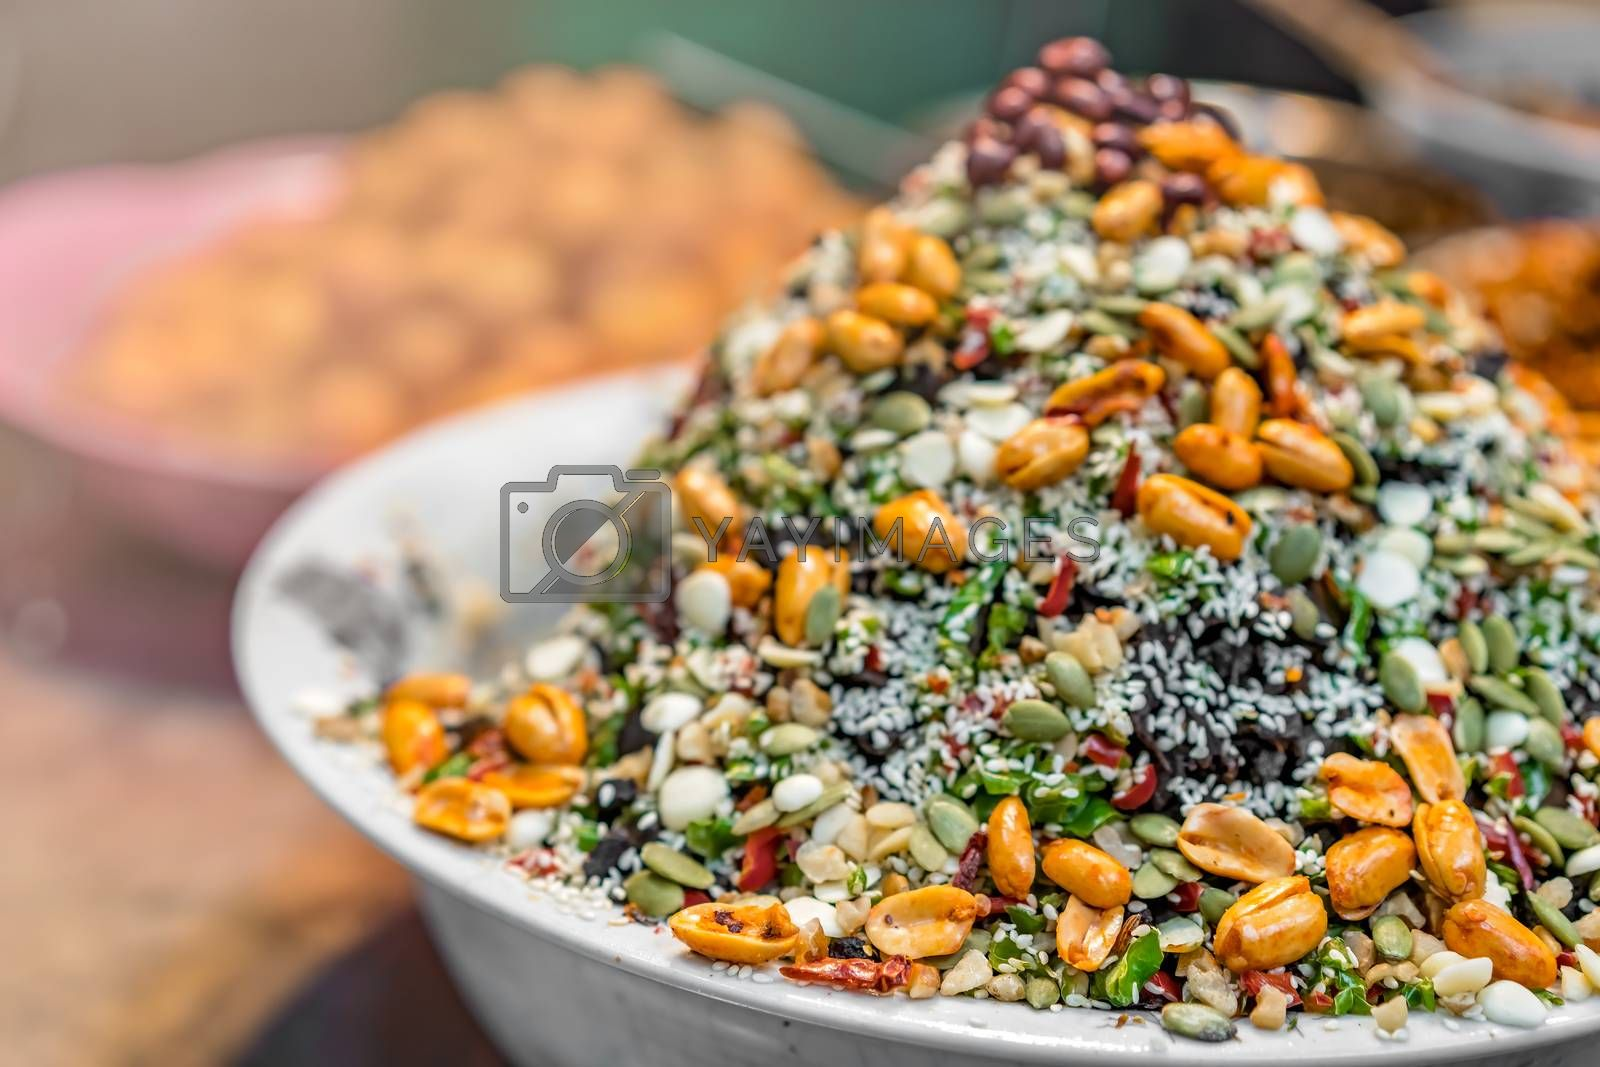 Closeup shot of delicious dessert meal of muesli with  oats, grains, nuts and seeds in a white bowl